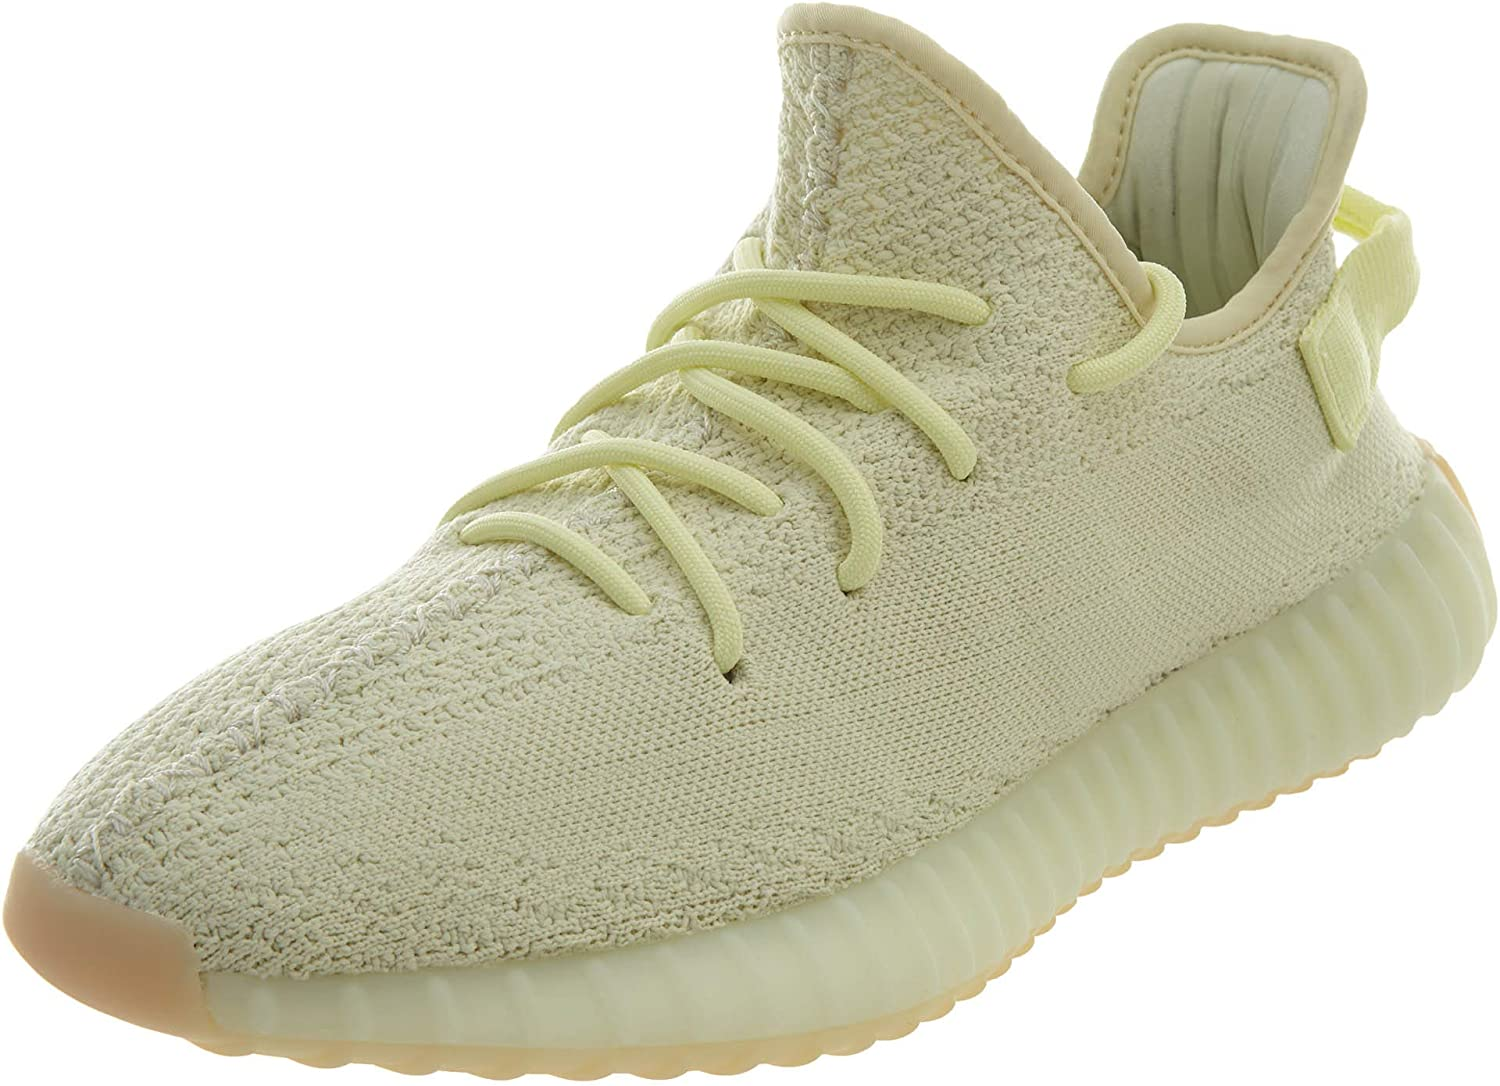 Politica Su Decente  Amazon.com | adidas Yeezy Boost 350 V2 Mens | Fashion Sneakers